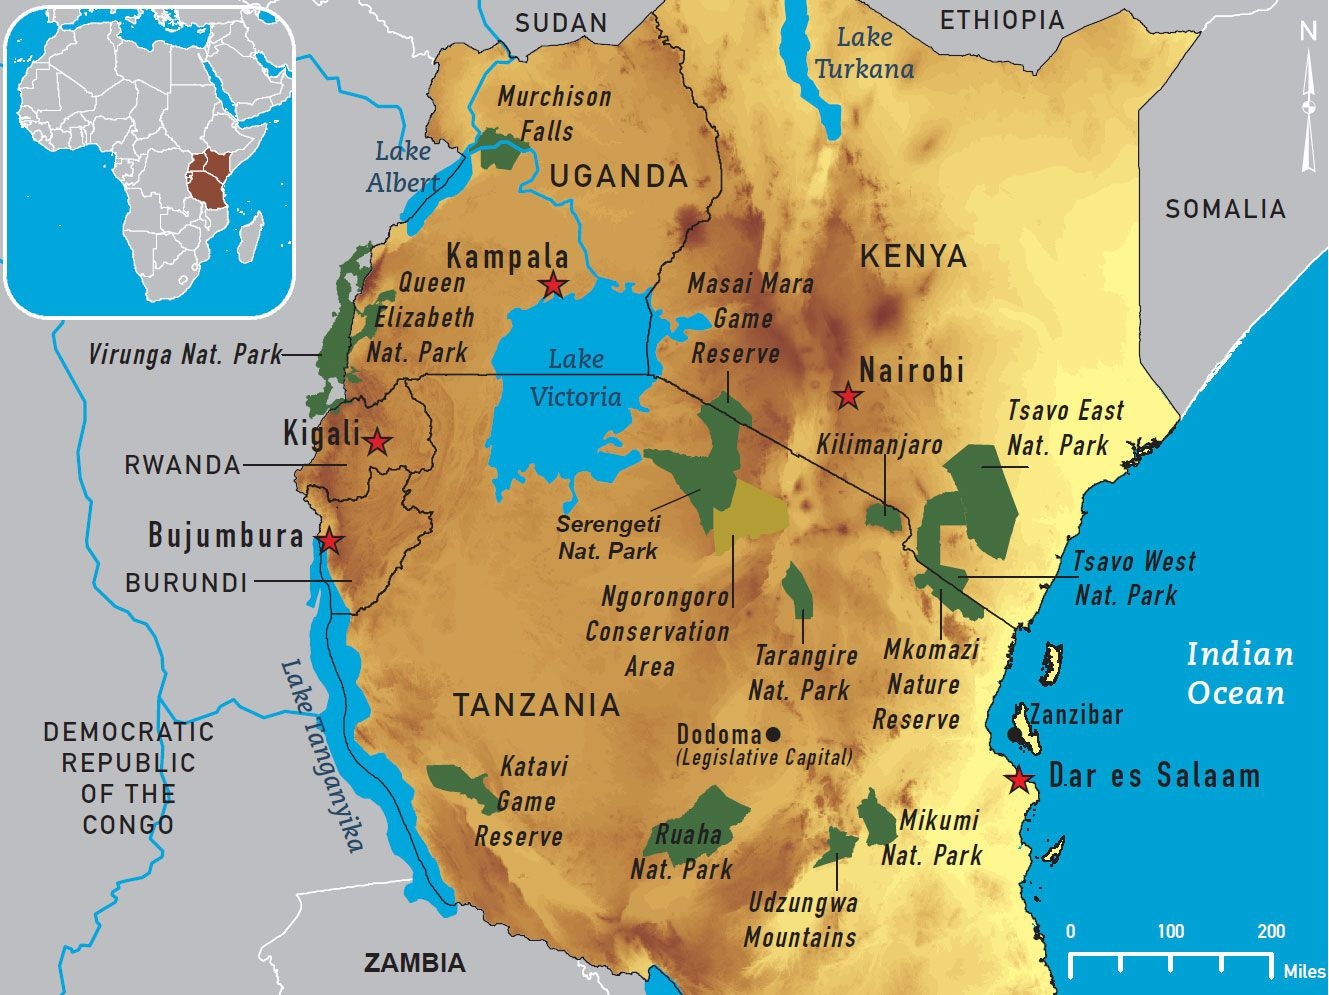 Lake Victoria On Map Of Africa.Map Of Central Africa National Parks Map 4 12 East Africa